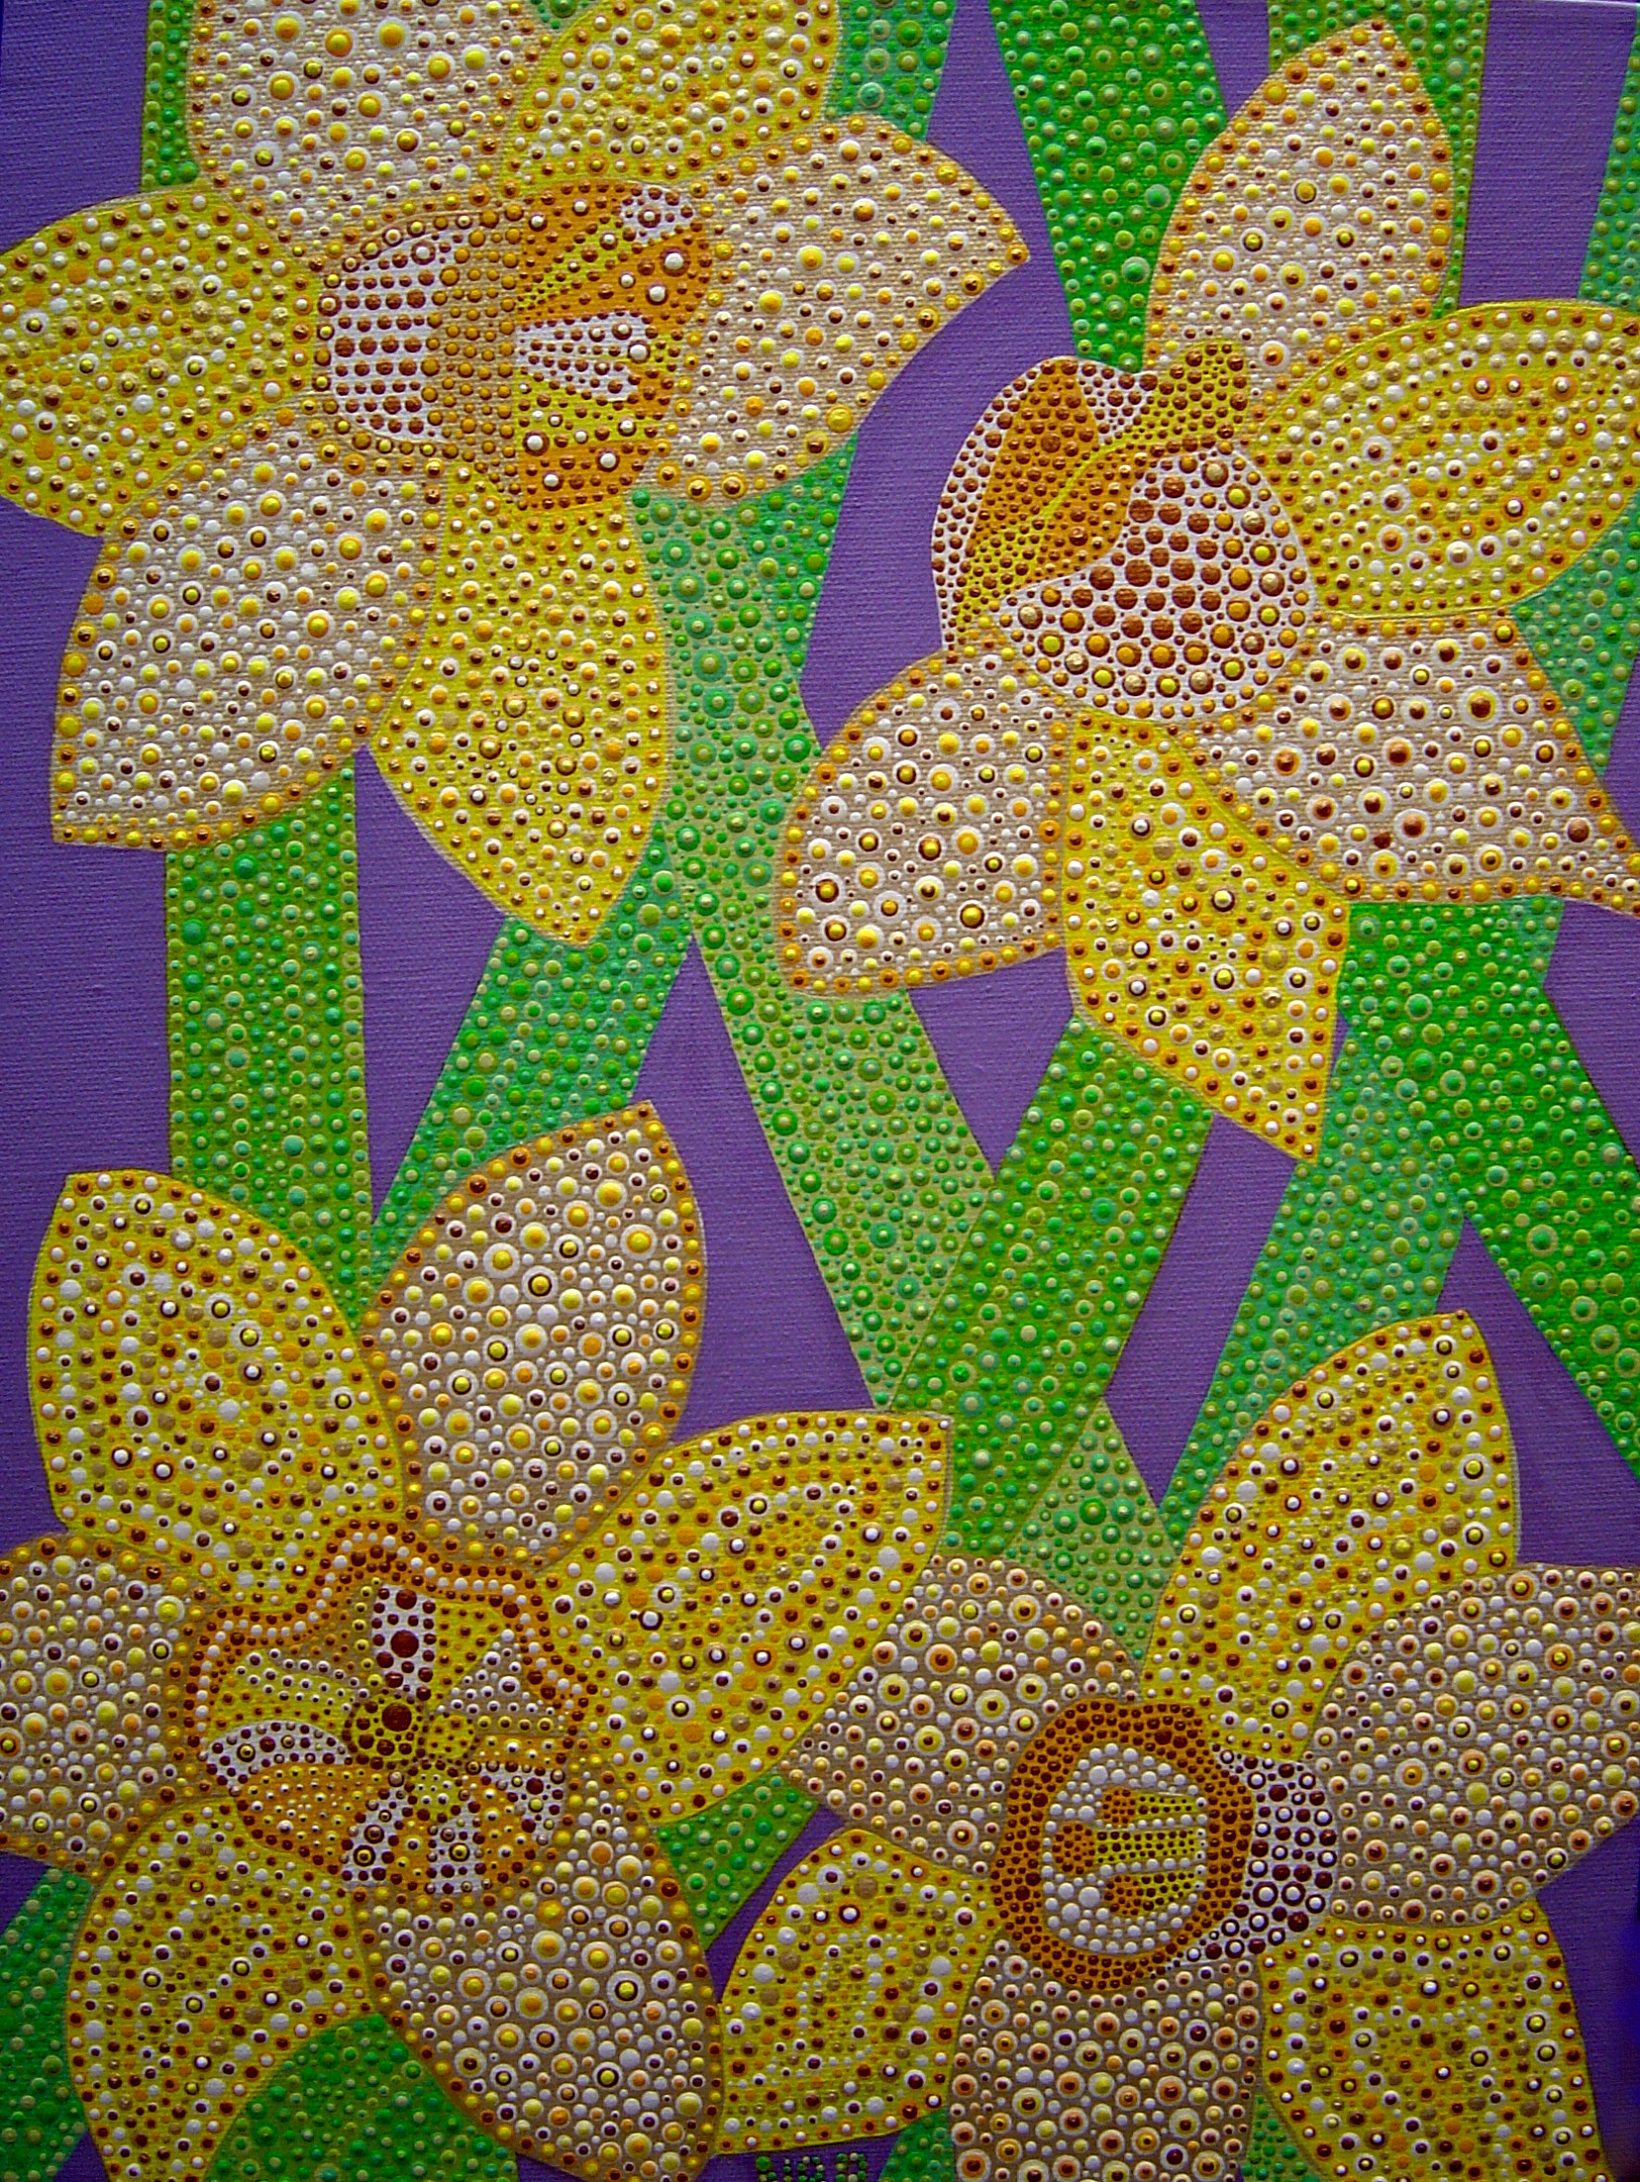 """Artwork """"Daffodils For Mardi Gras"""" won First Place (professional category, oil and acrylic) and Viewers Choice Award at the Maryland State Fair 2009."""